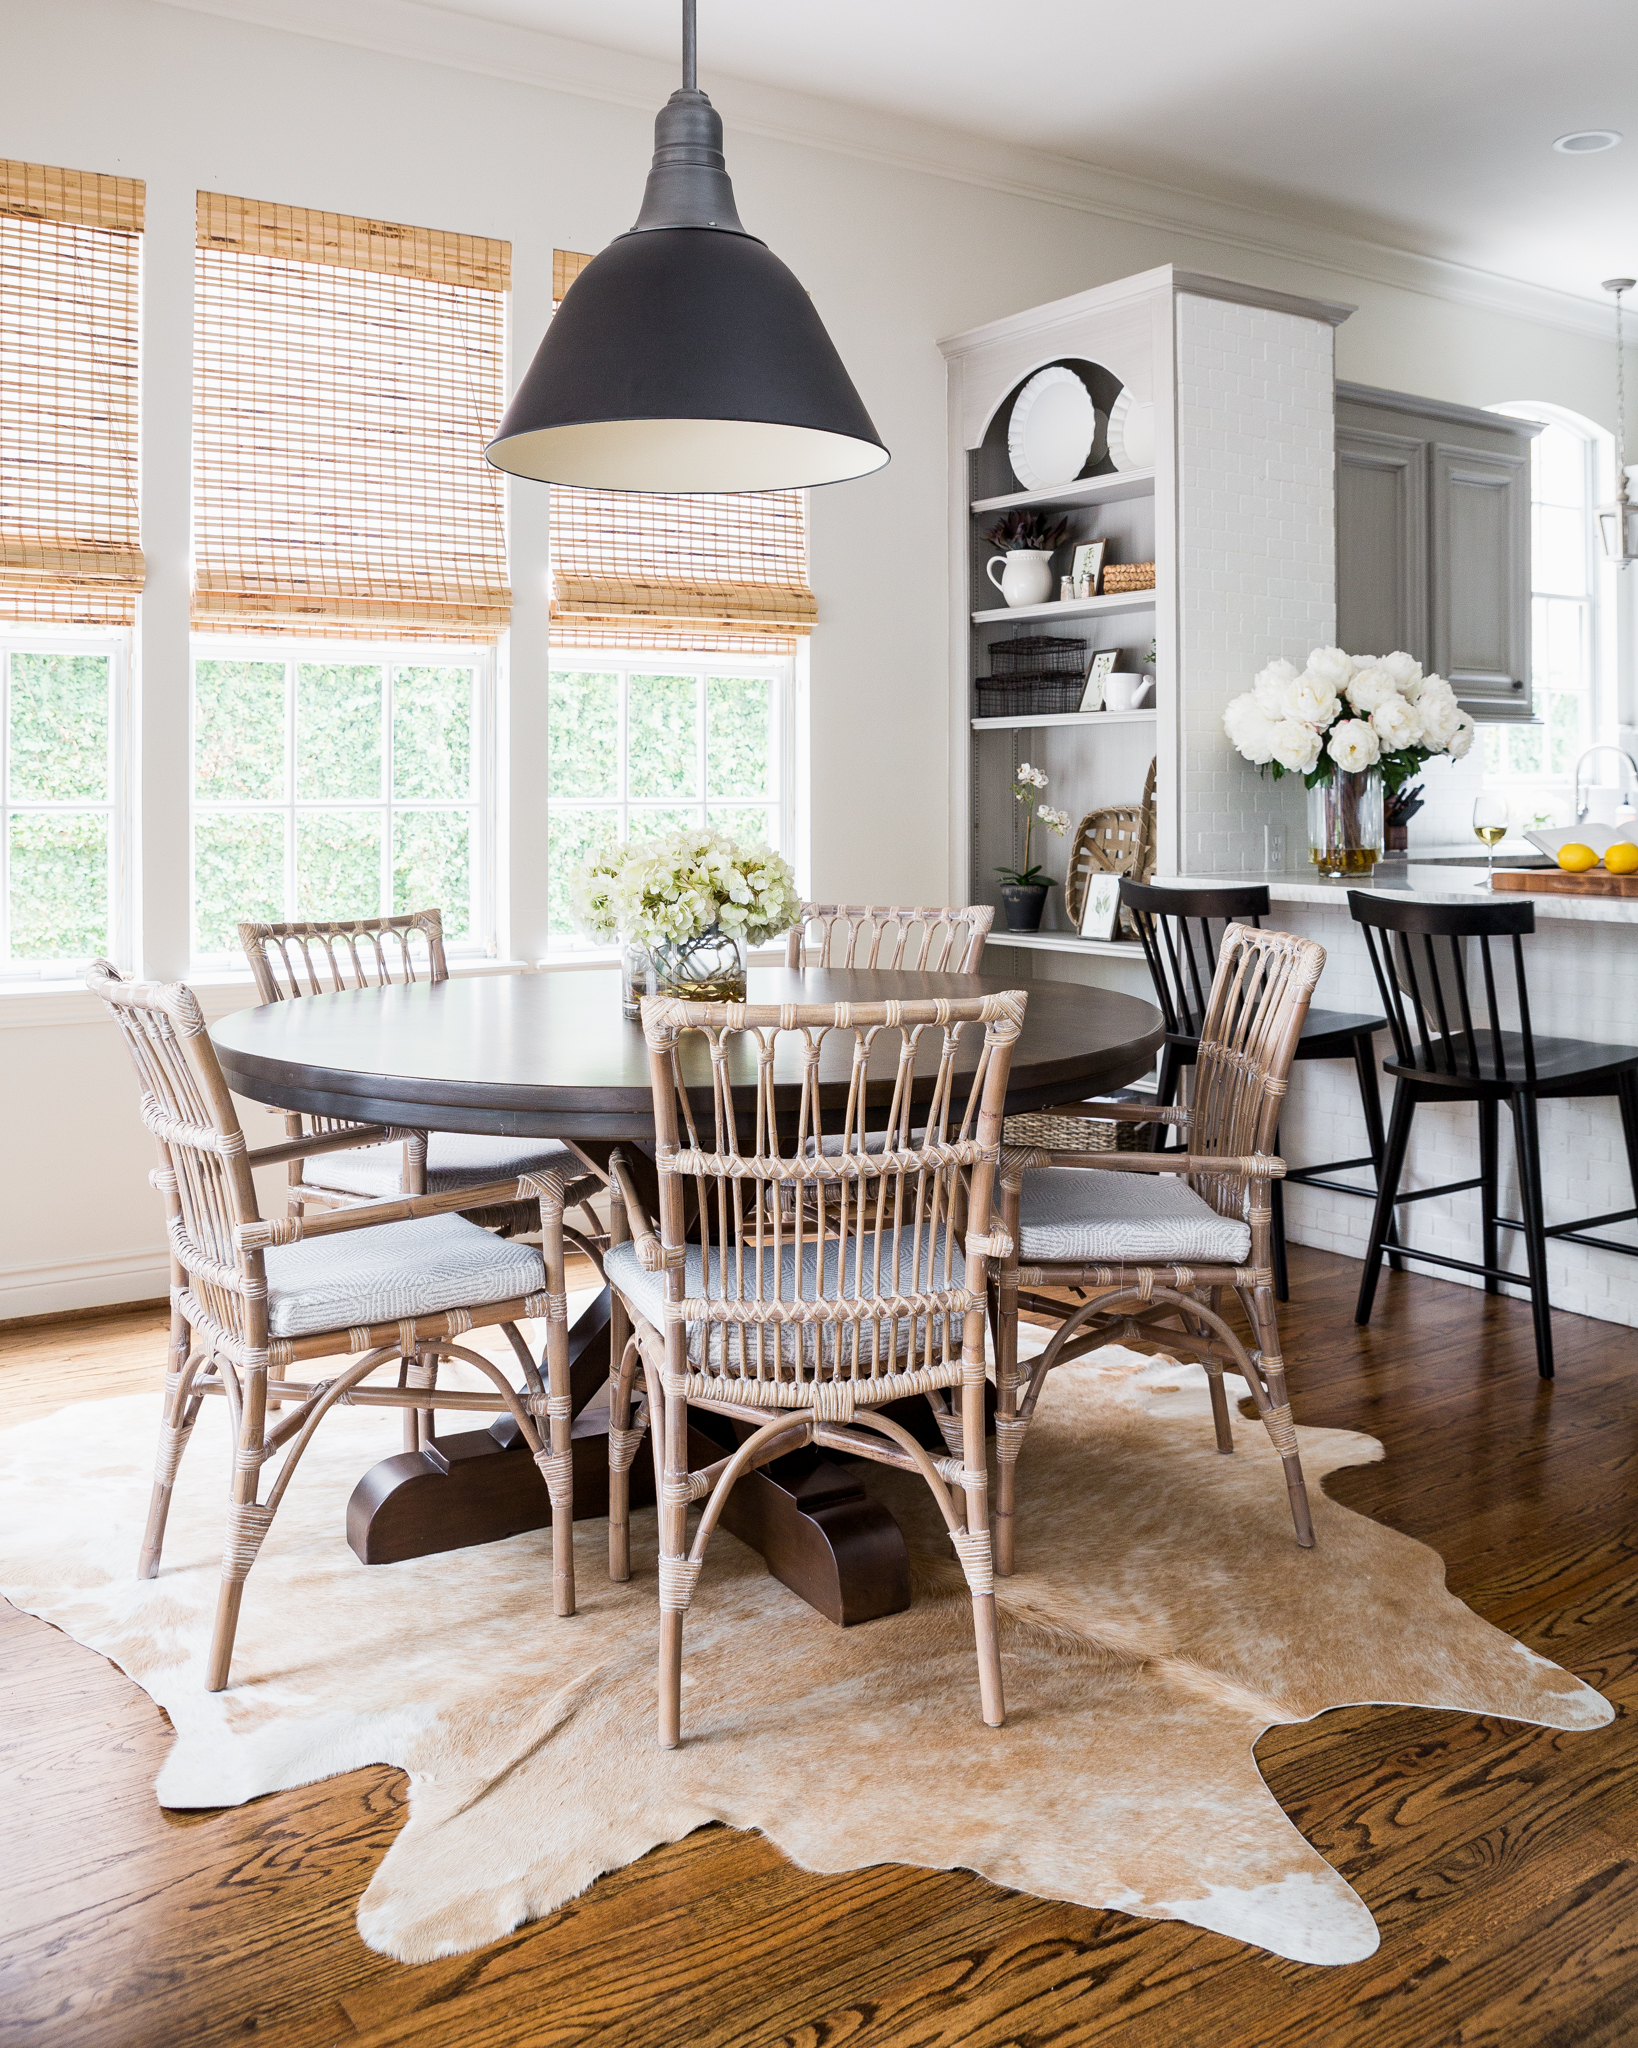 Farmhouse Breakfast Room with Cowhide Rug and Rattan Chairs.jpg